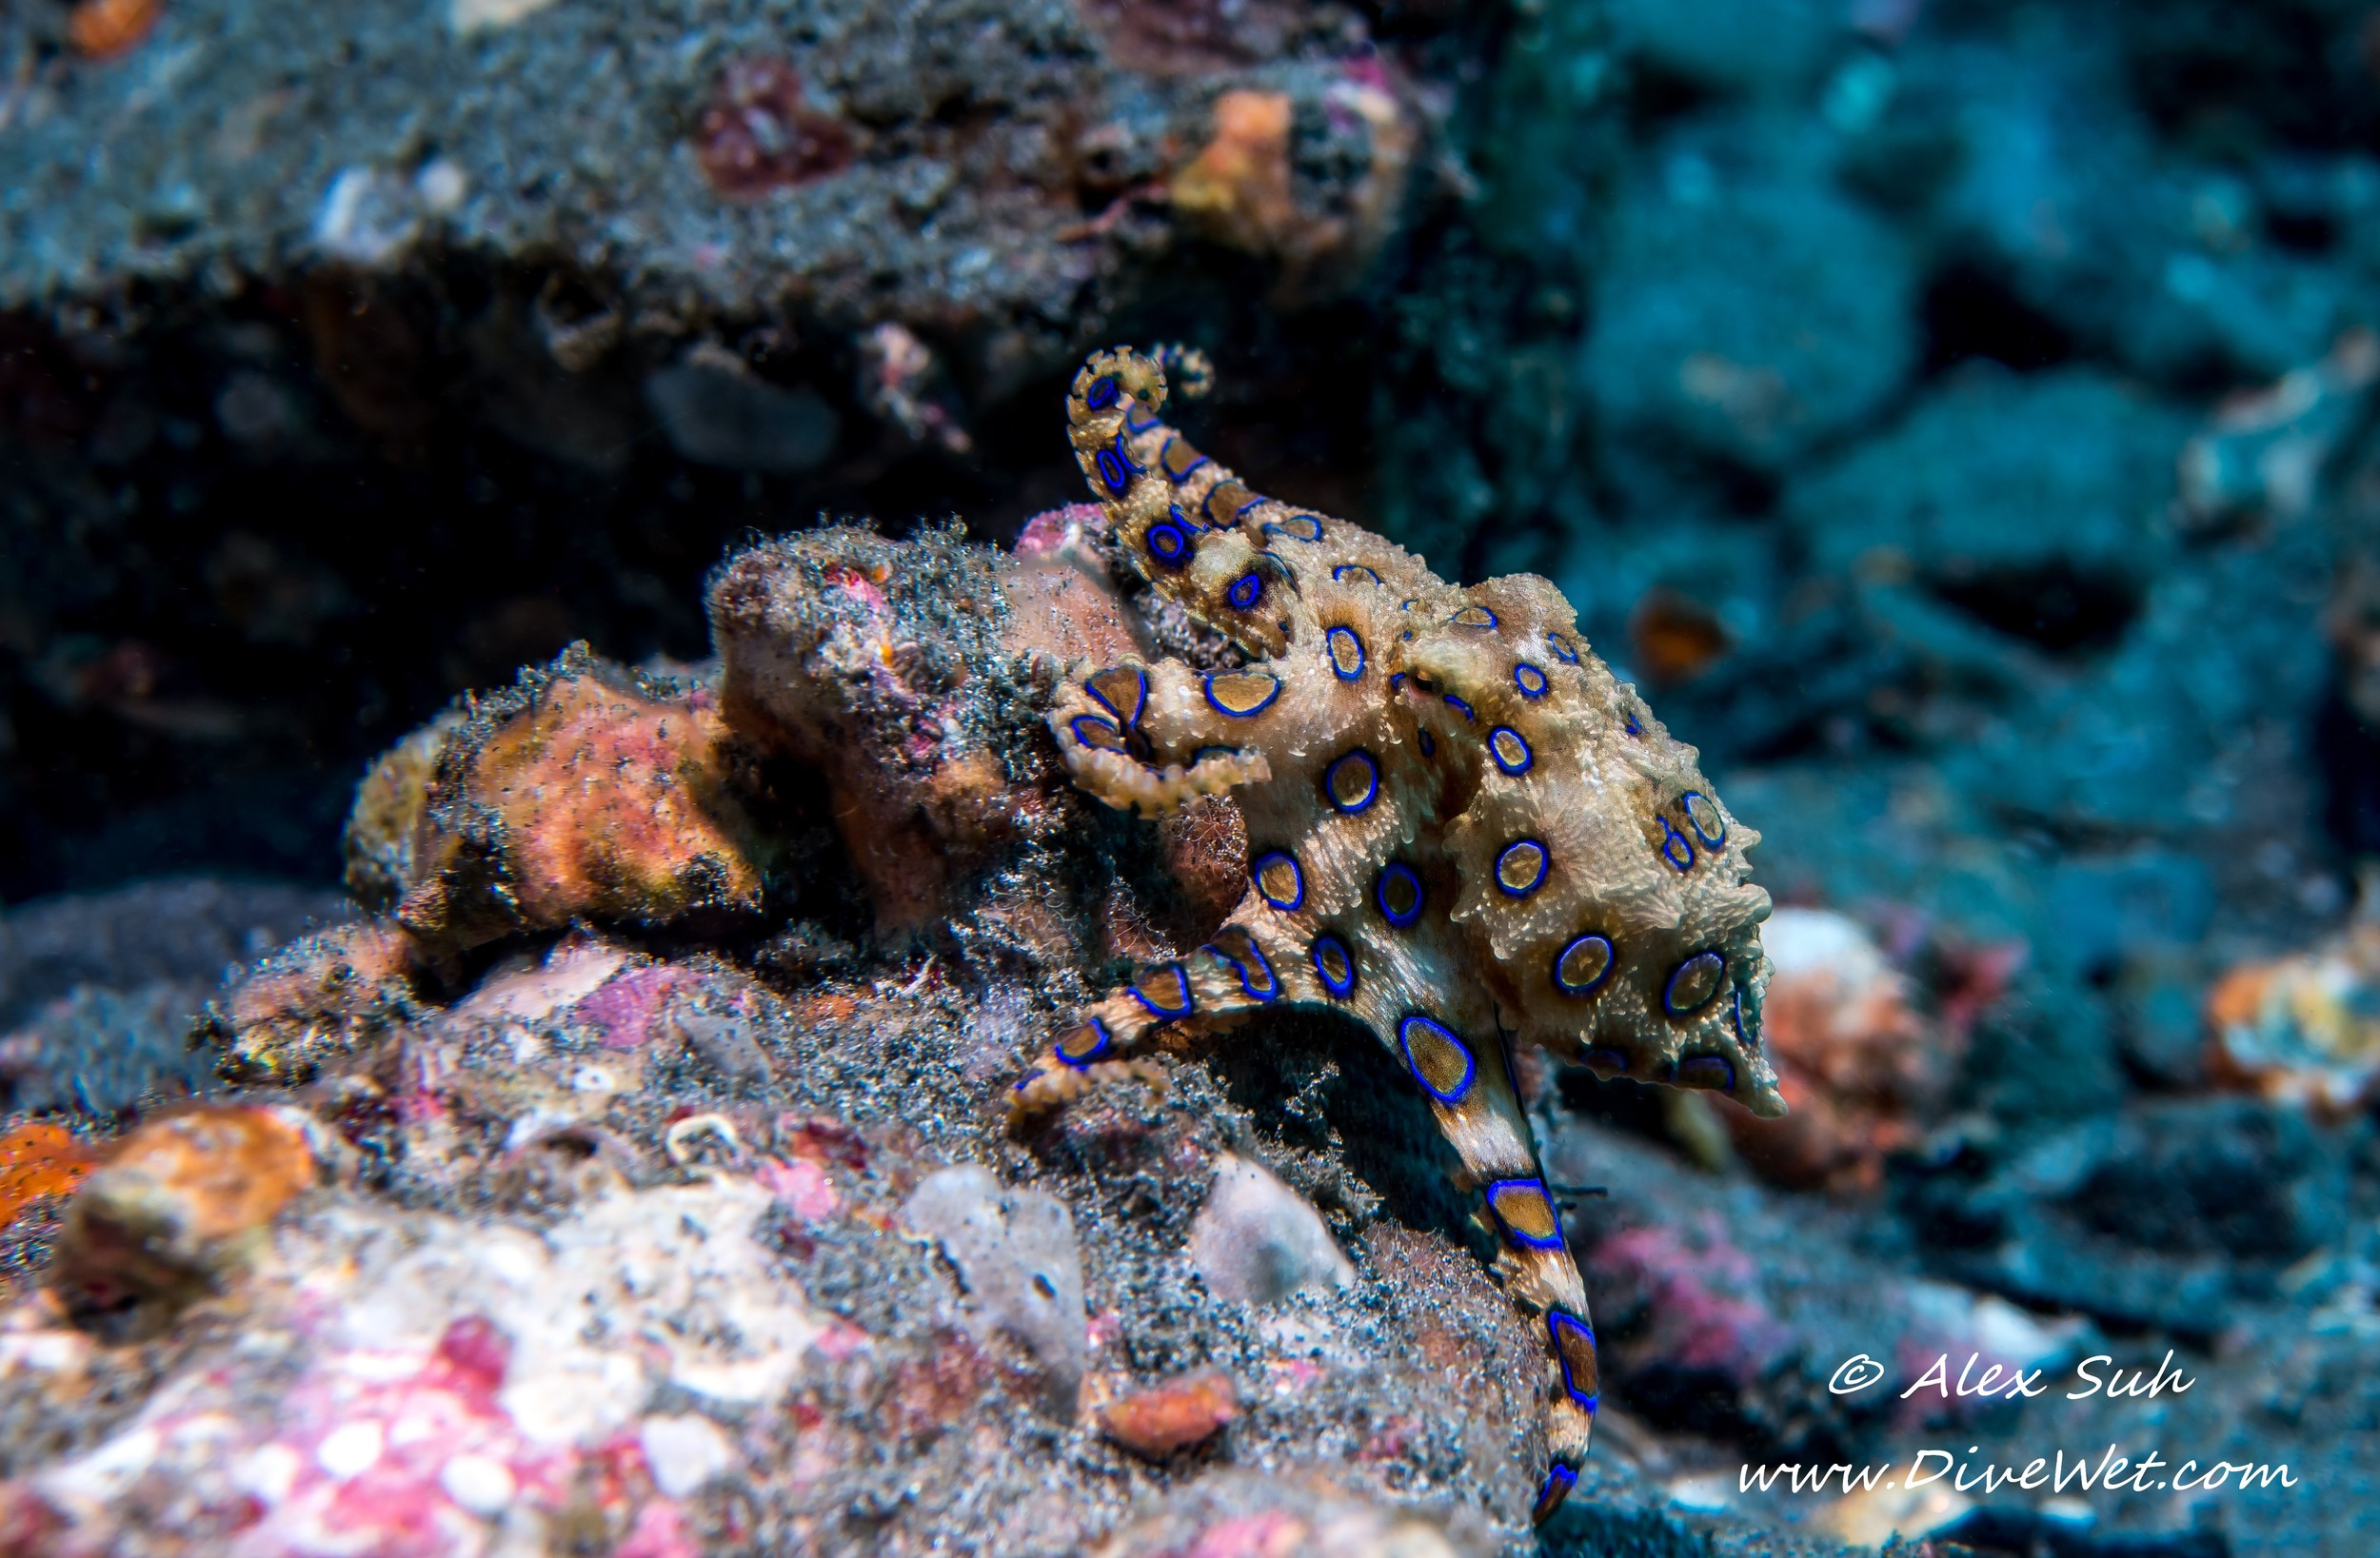 Blue-ringed Octopus (Hapalochlaena sp).